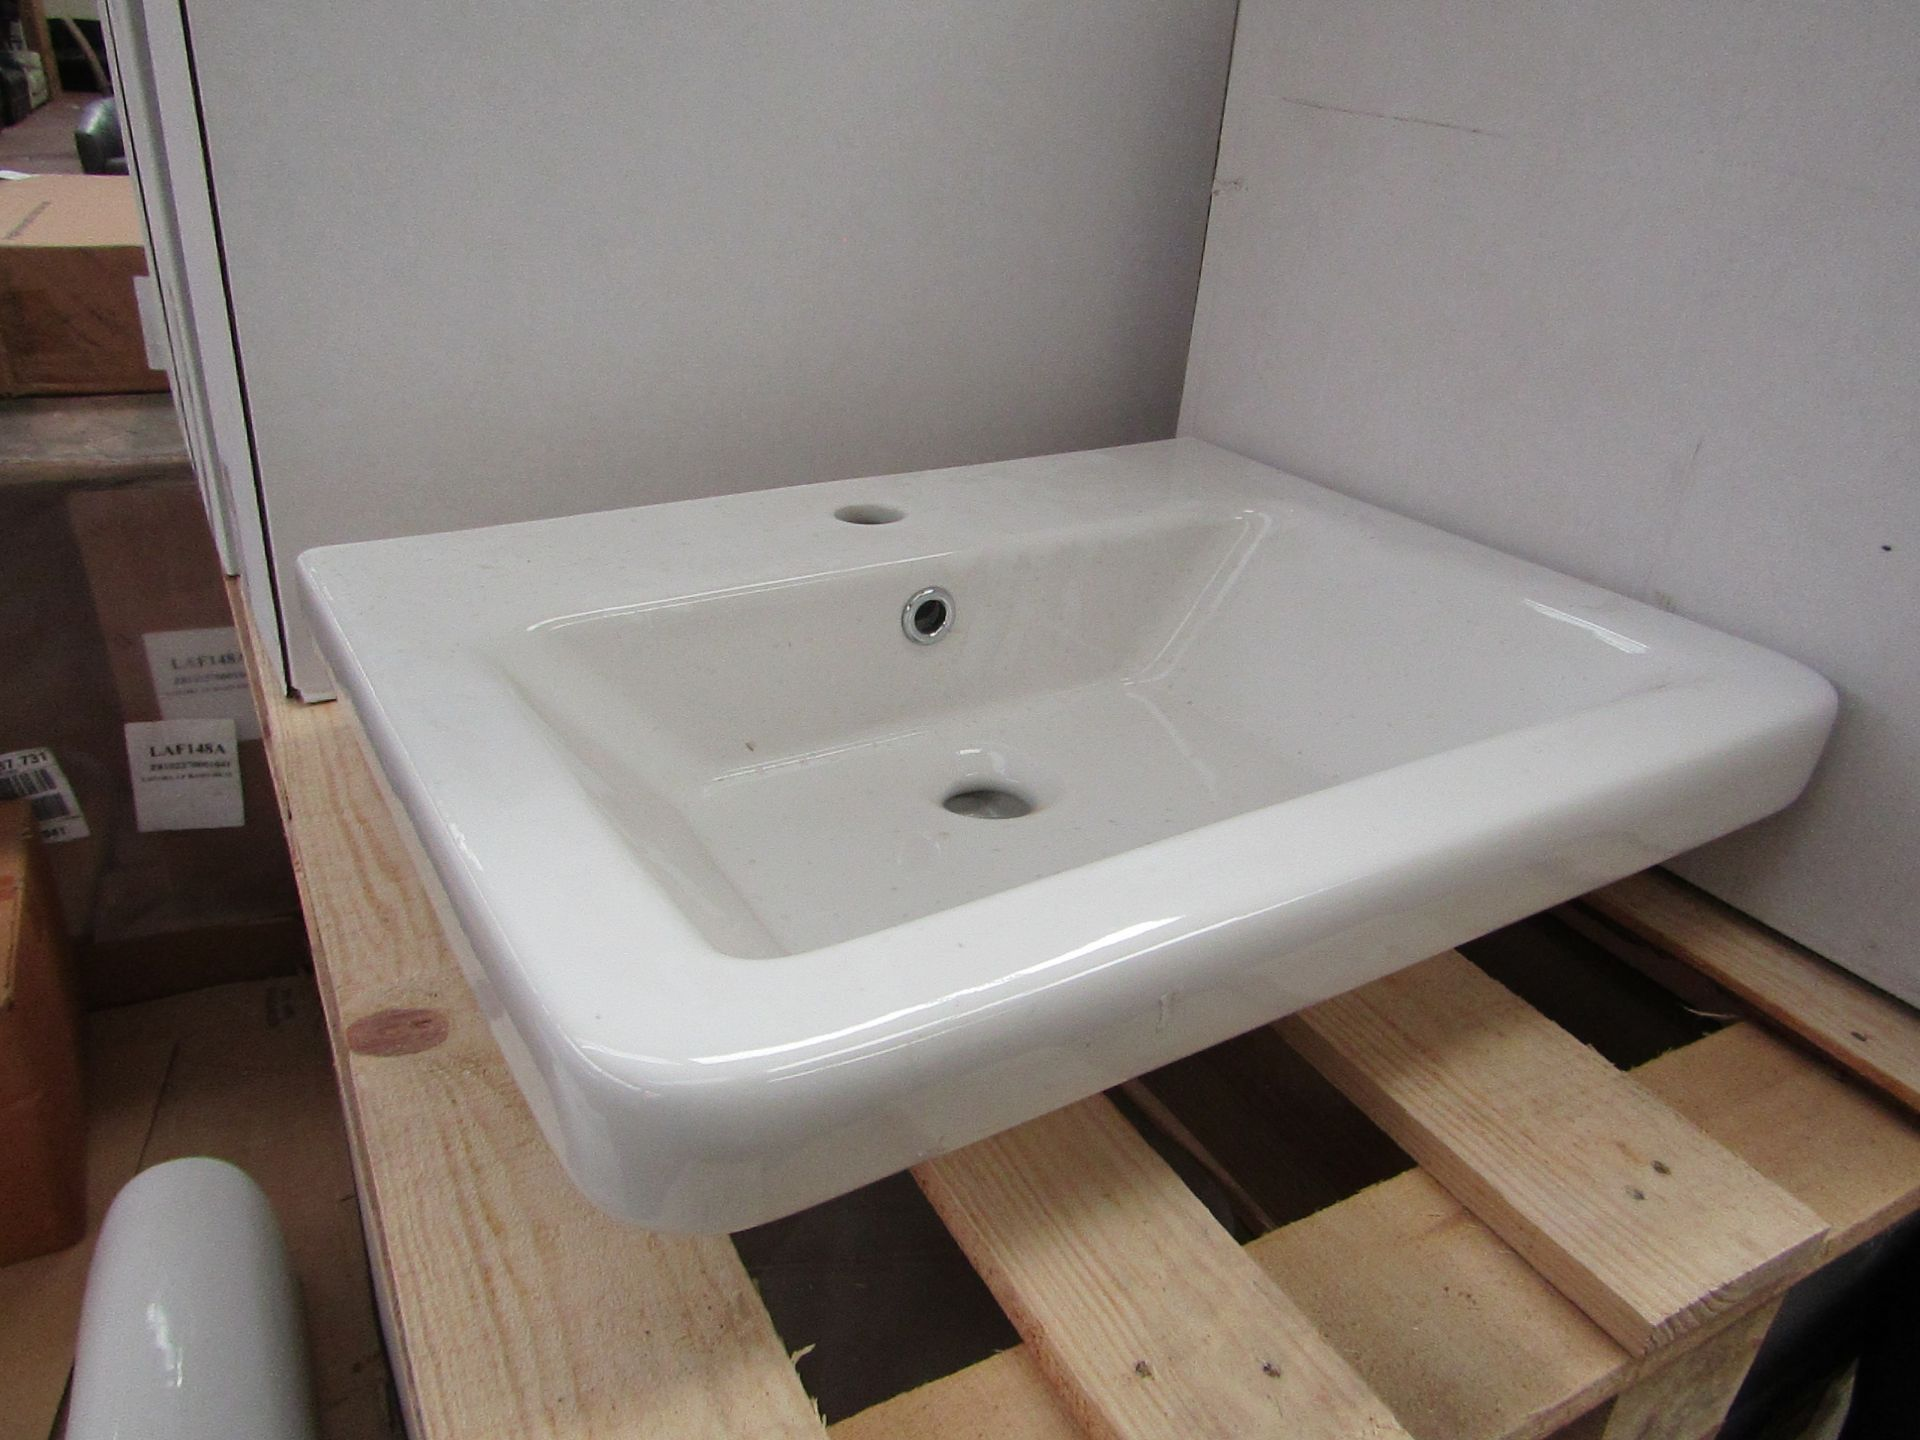 Lotto 41 - Verso 550mm 1 tap hole sink, new and boxed